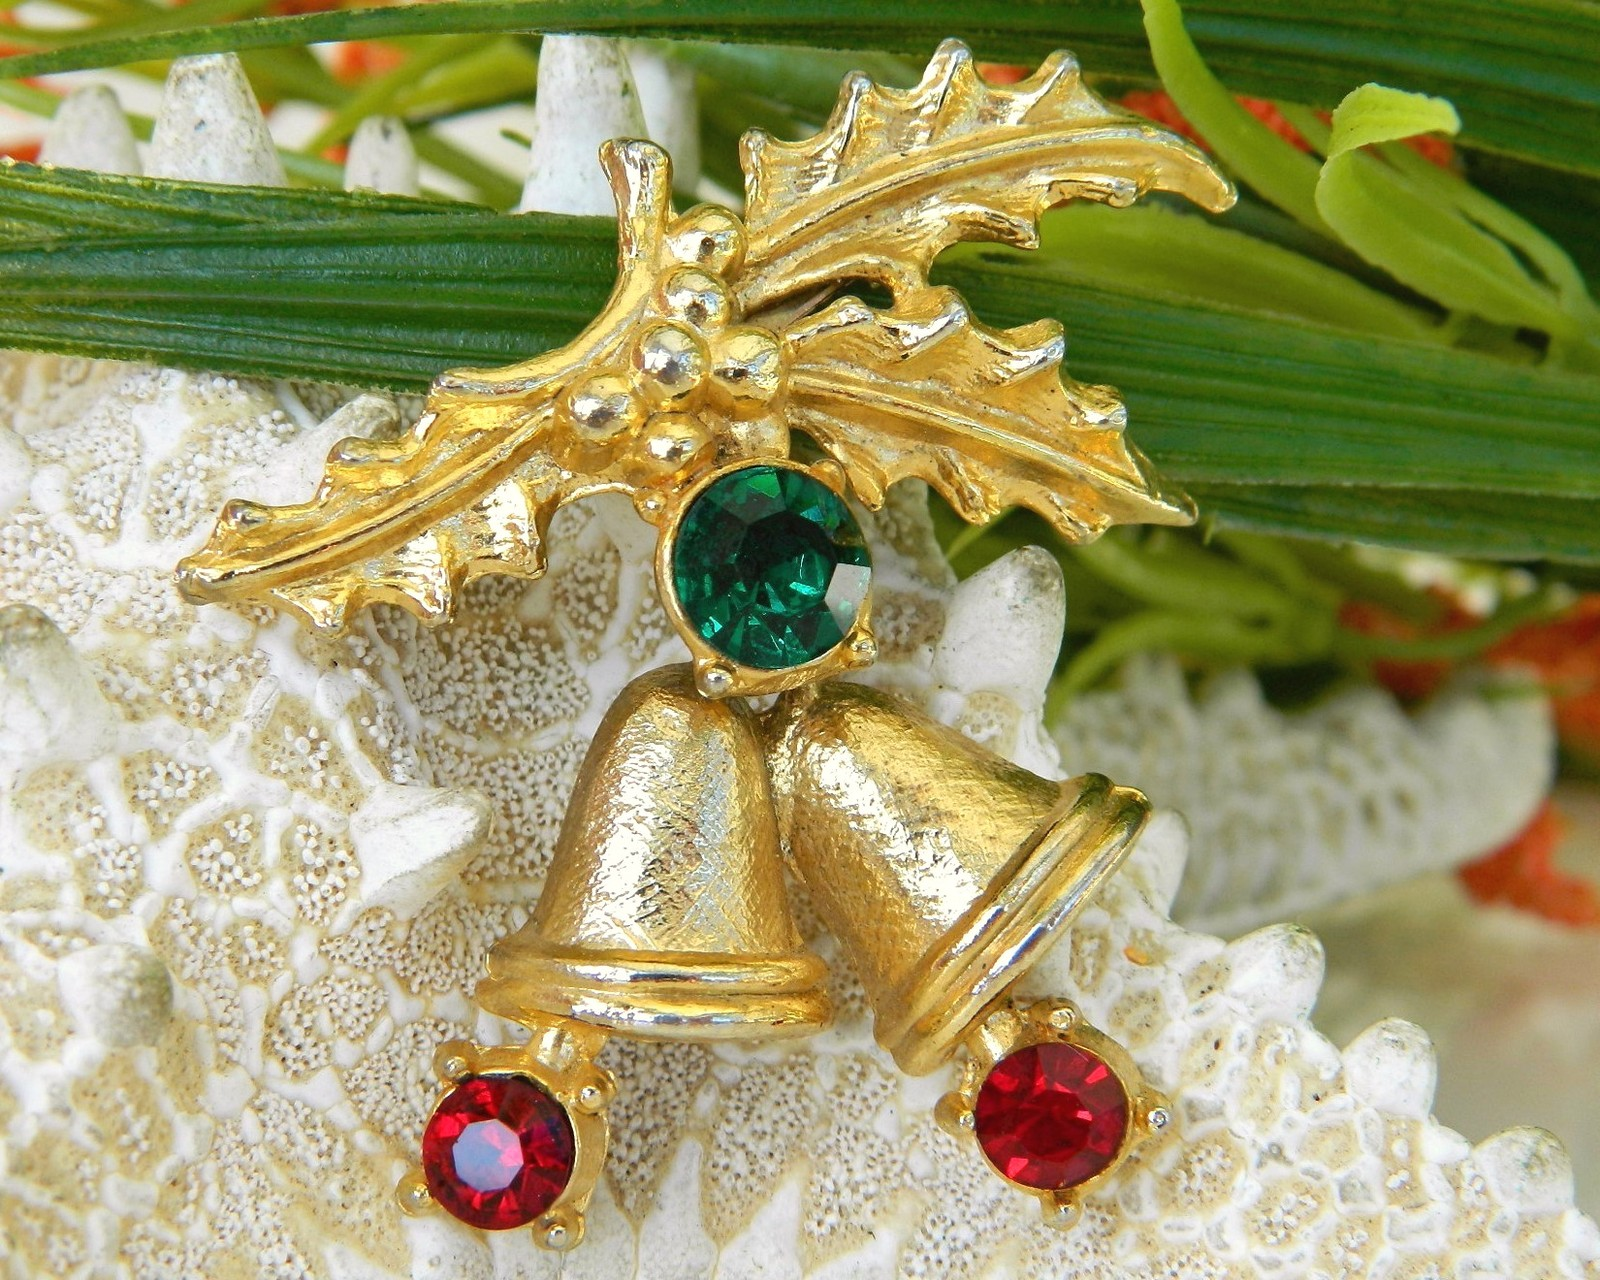 Vintage Christmas Holly Bells Rhinestone Brooch Pin Winter Holiday image 7